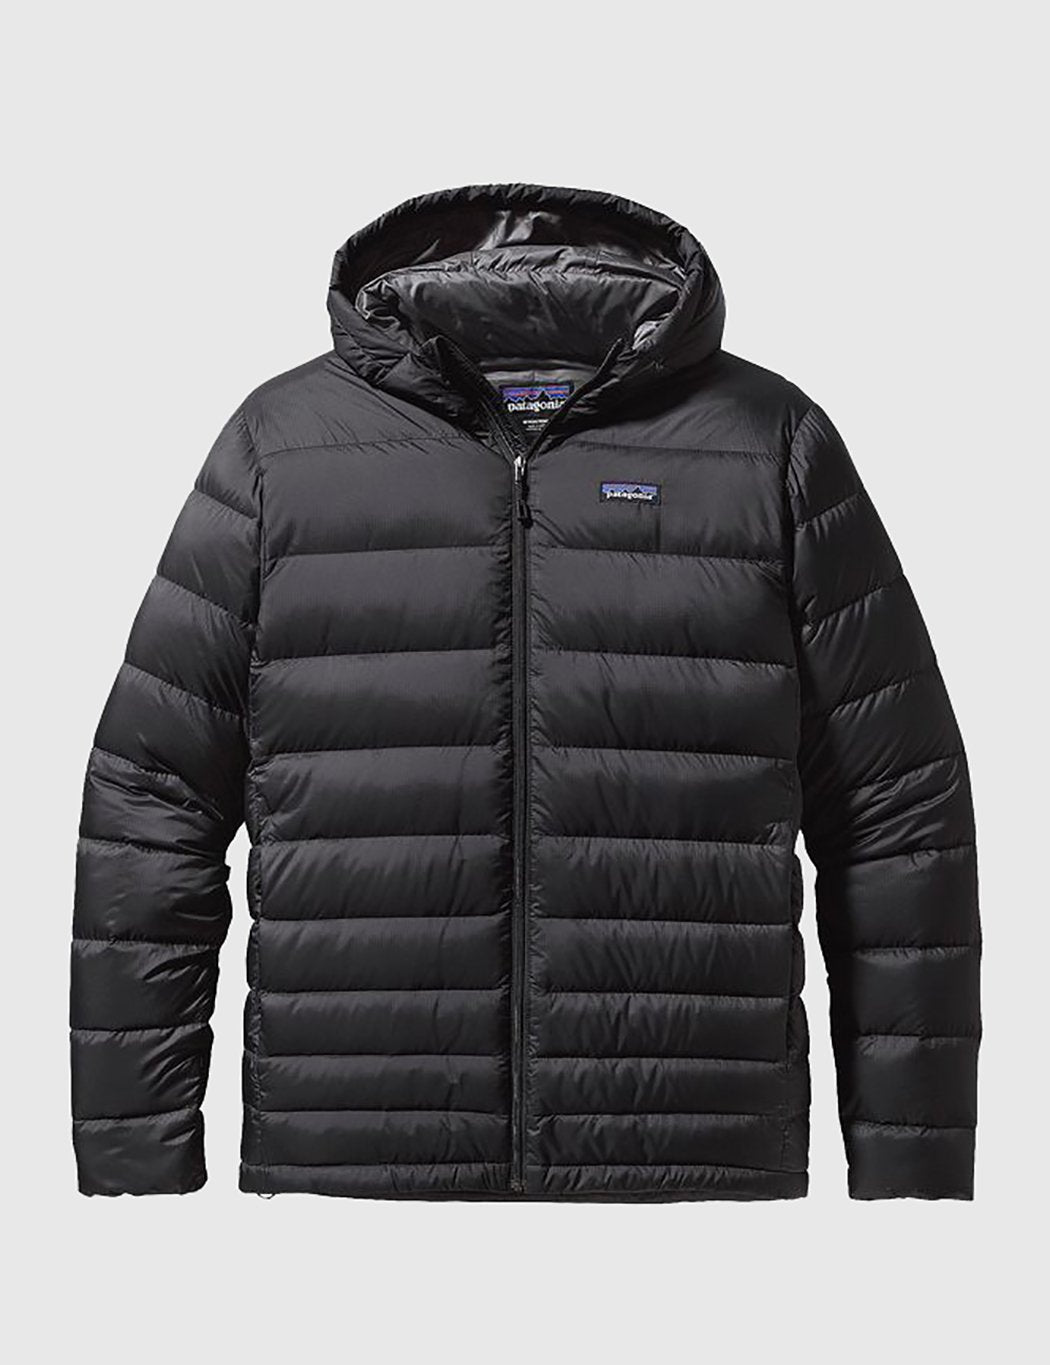 Patagonia Hi Loft Down Hooded Jacket - Black